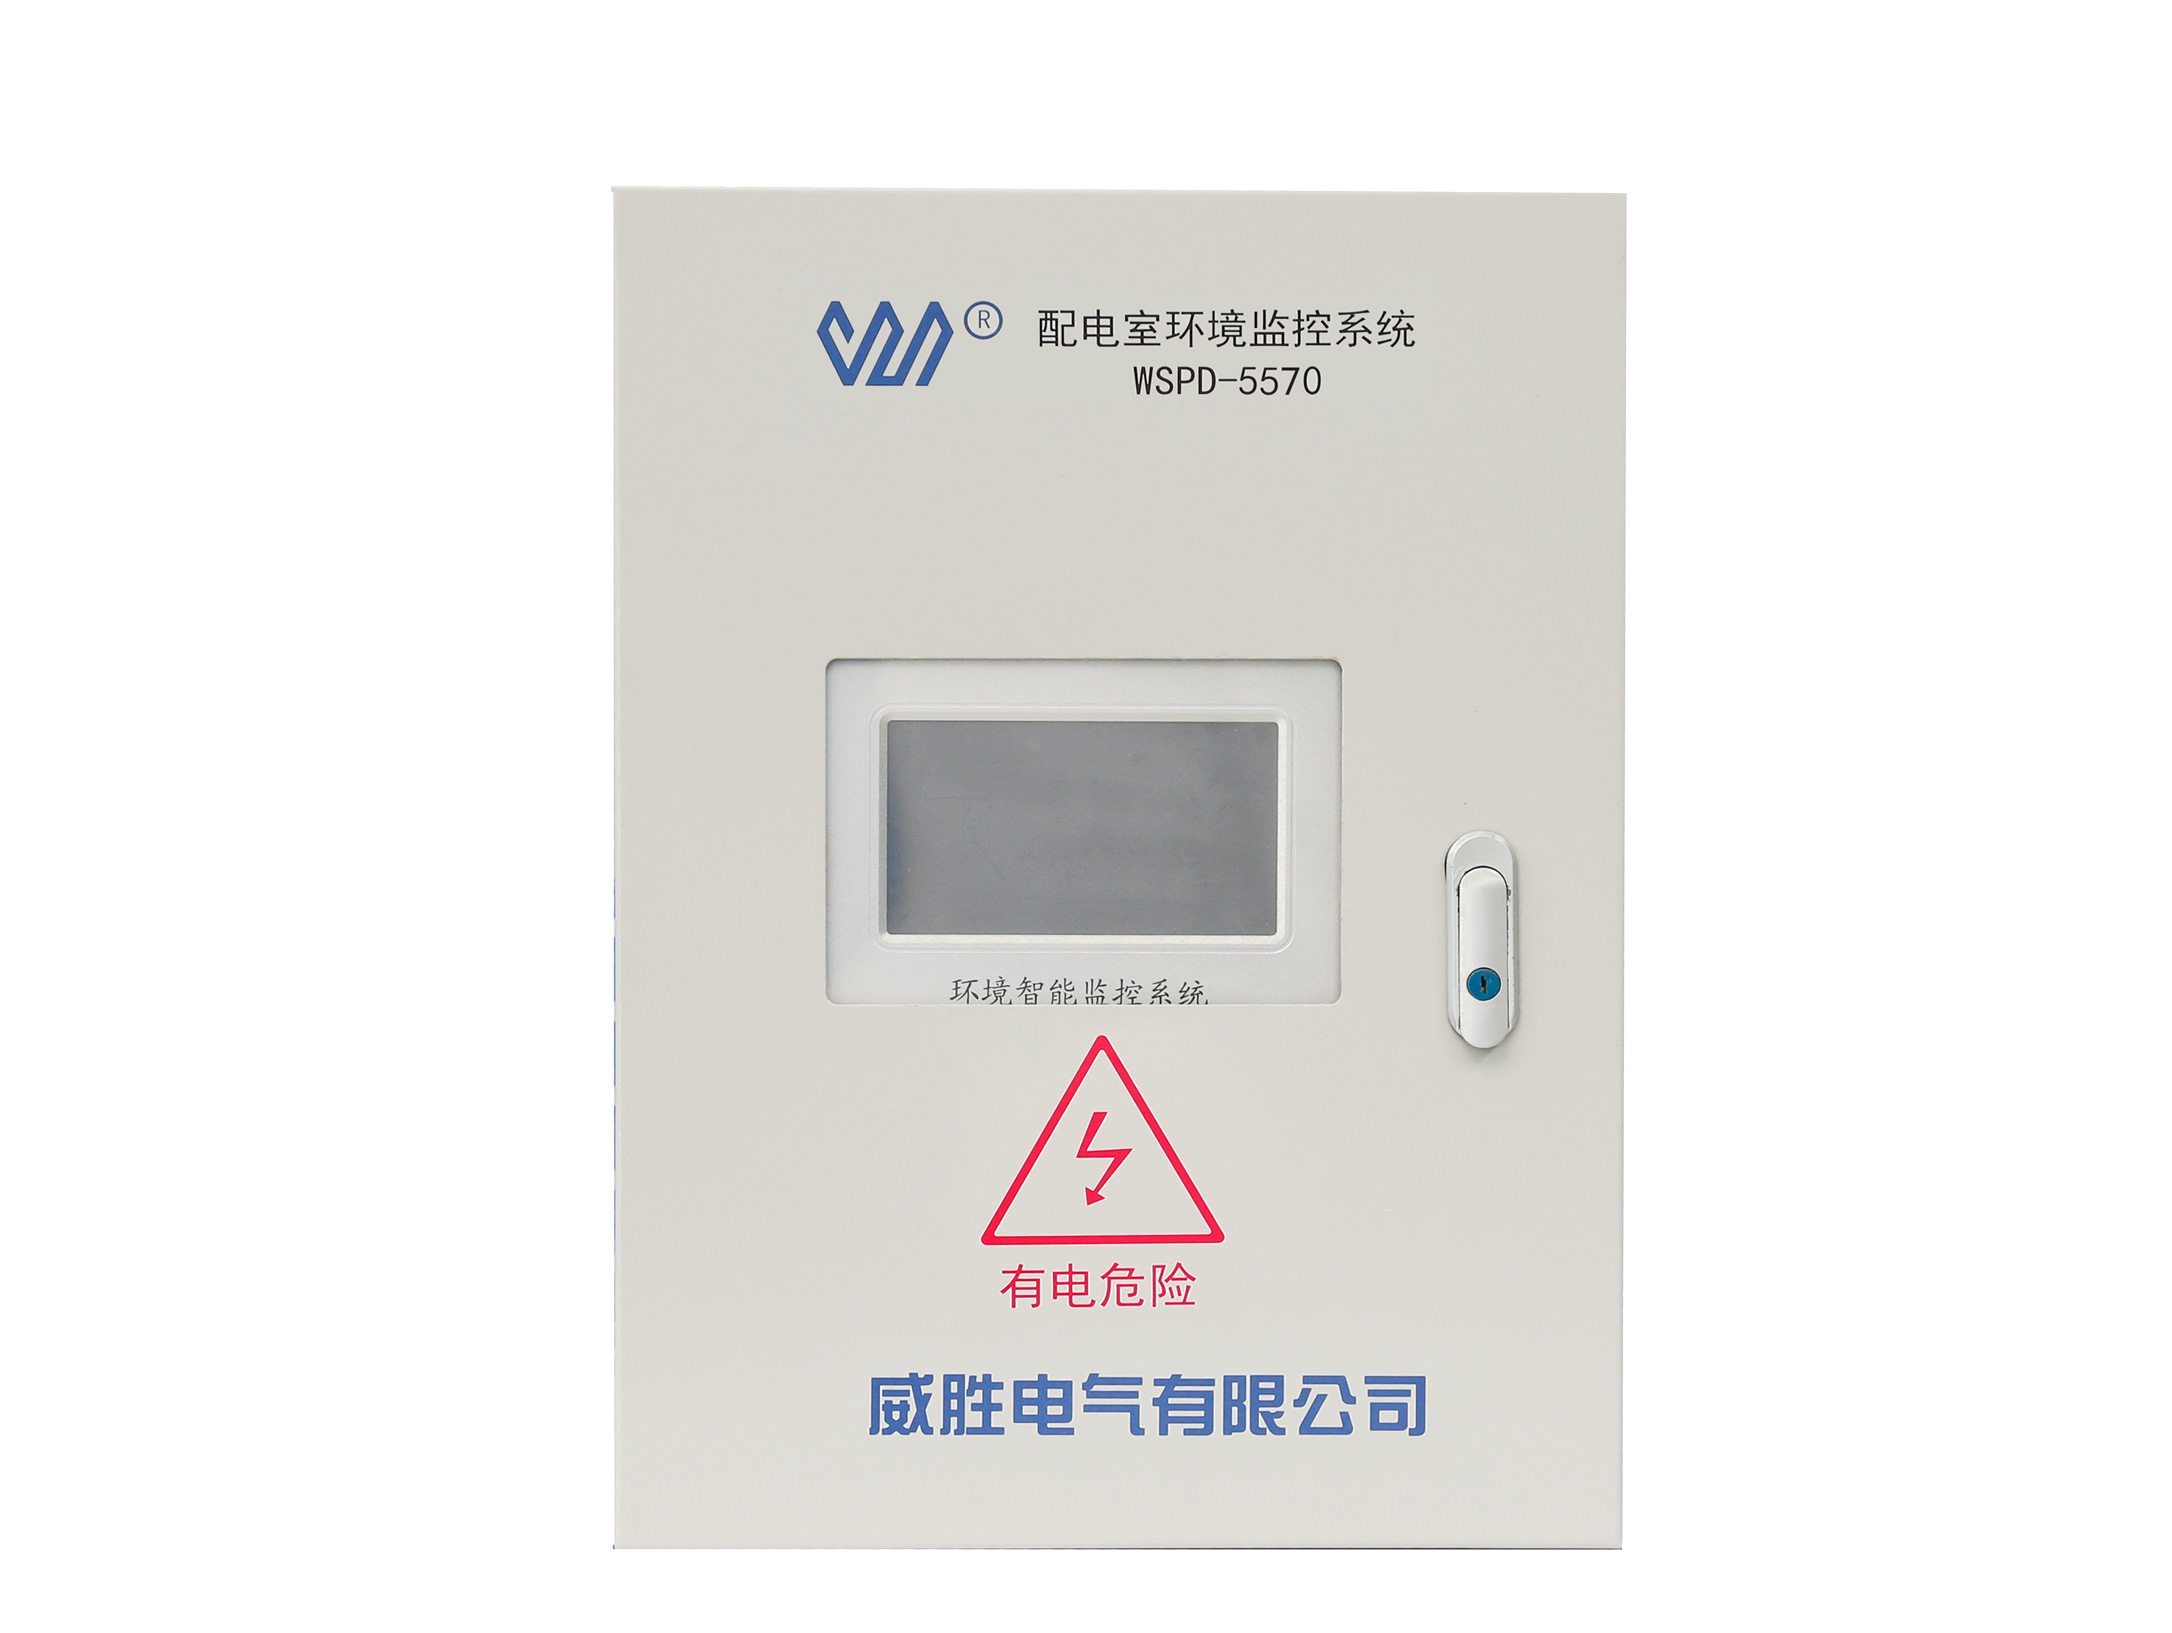 WSPD-5570 environmental monitoring system